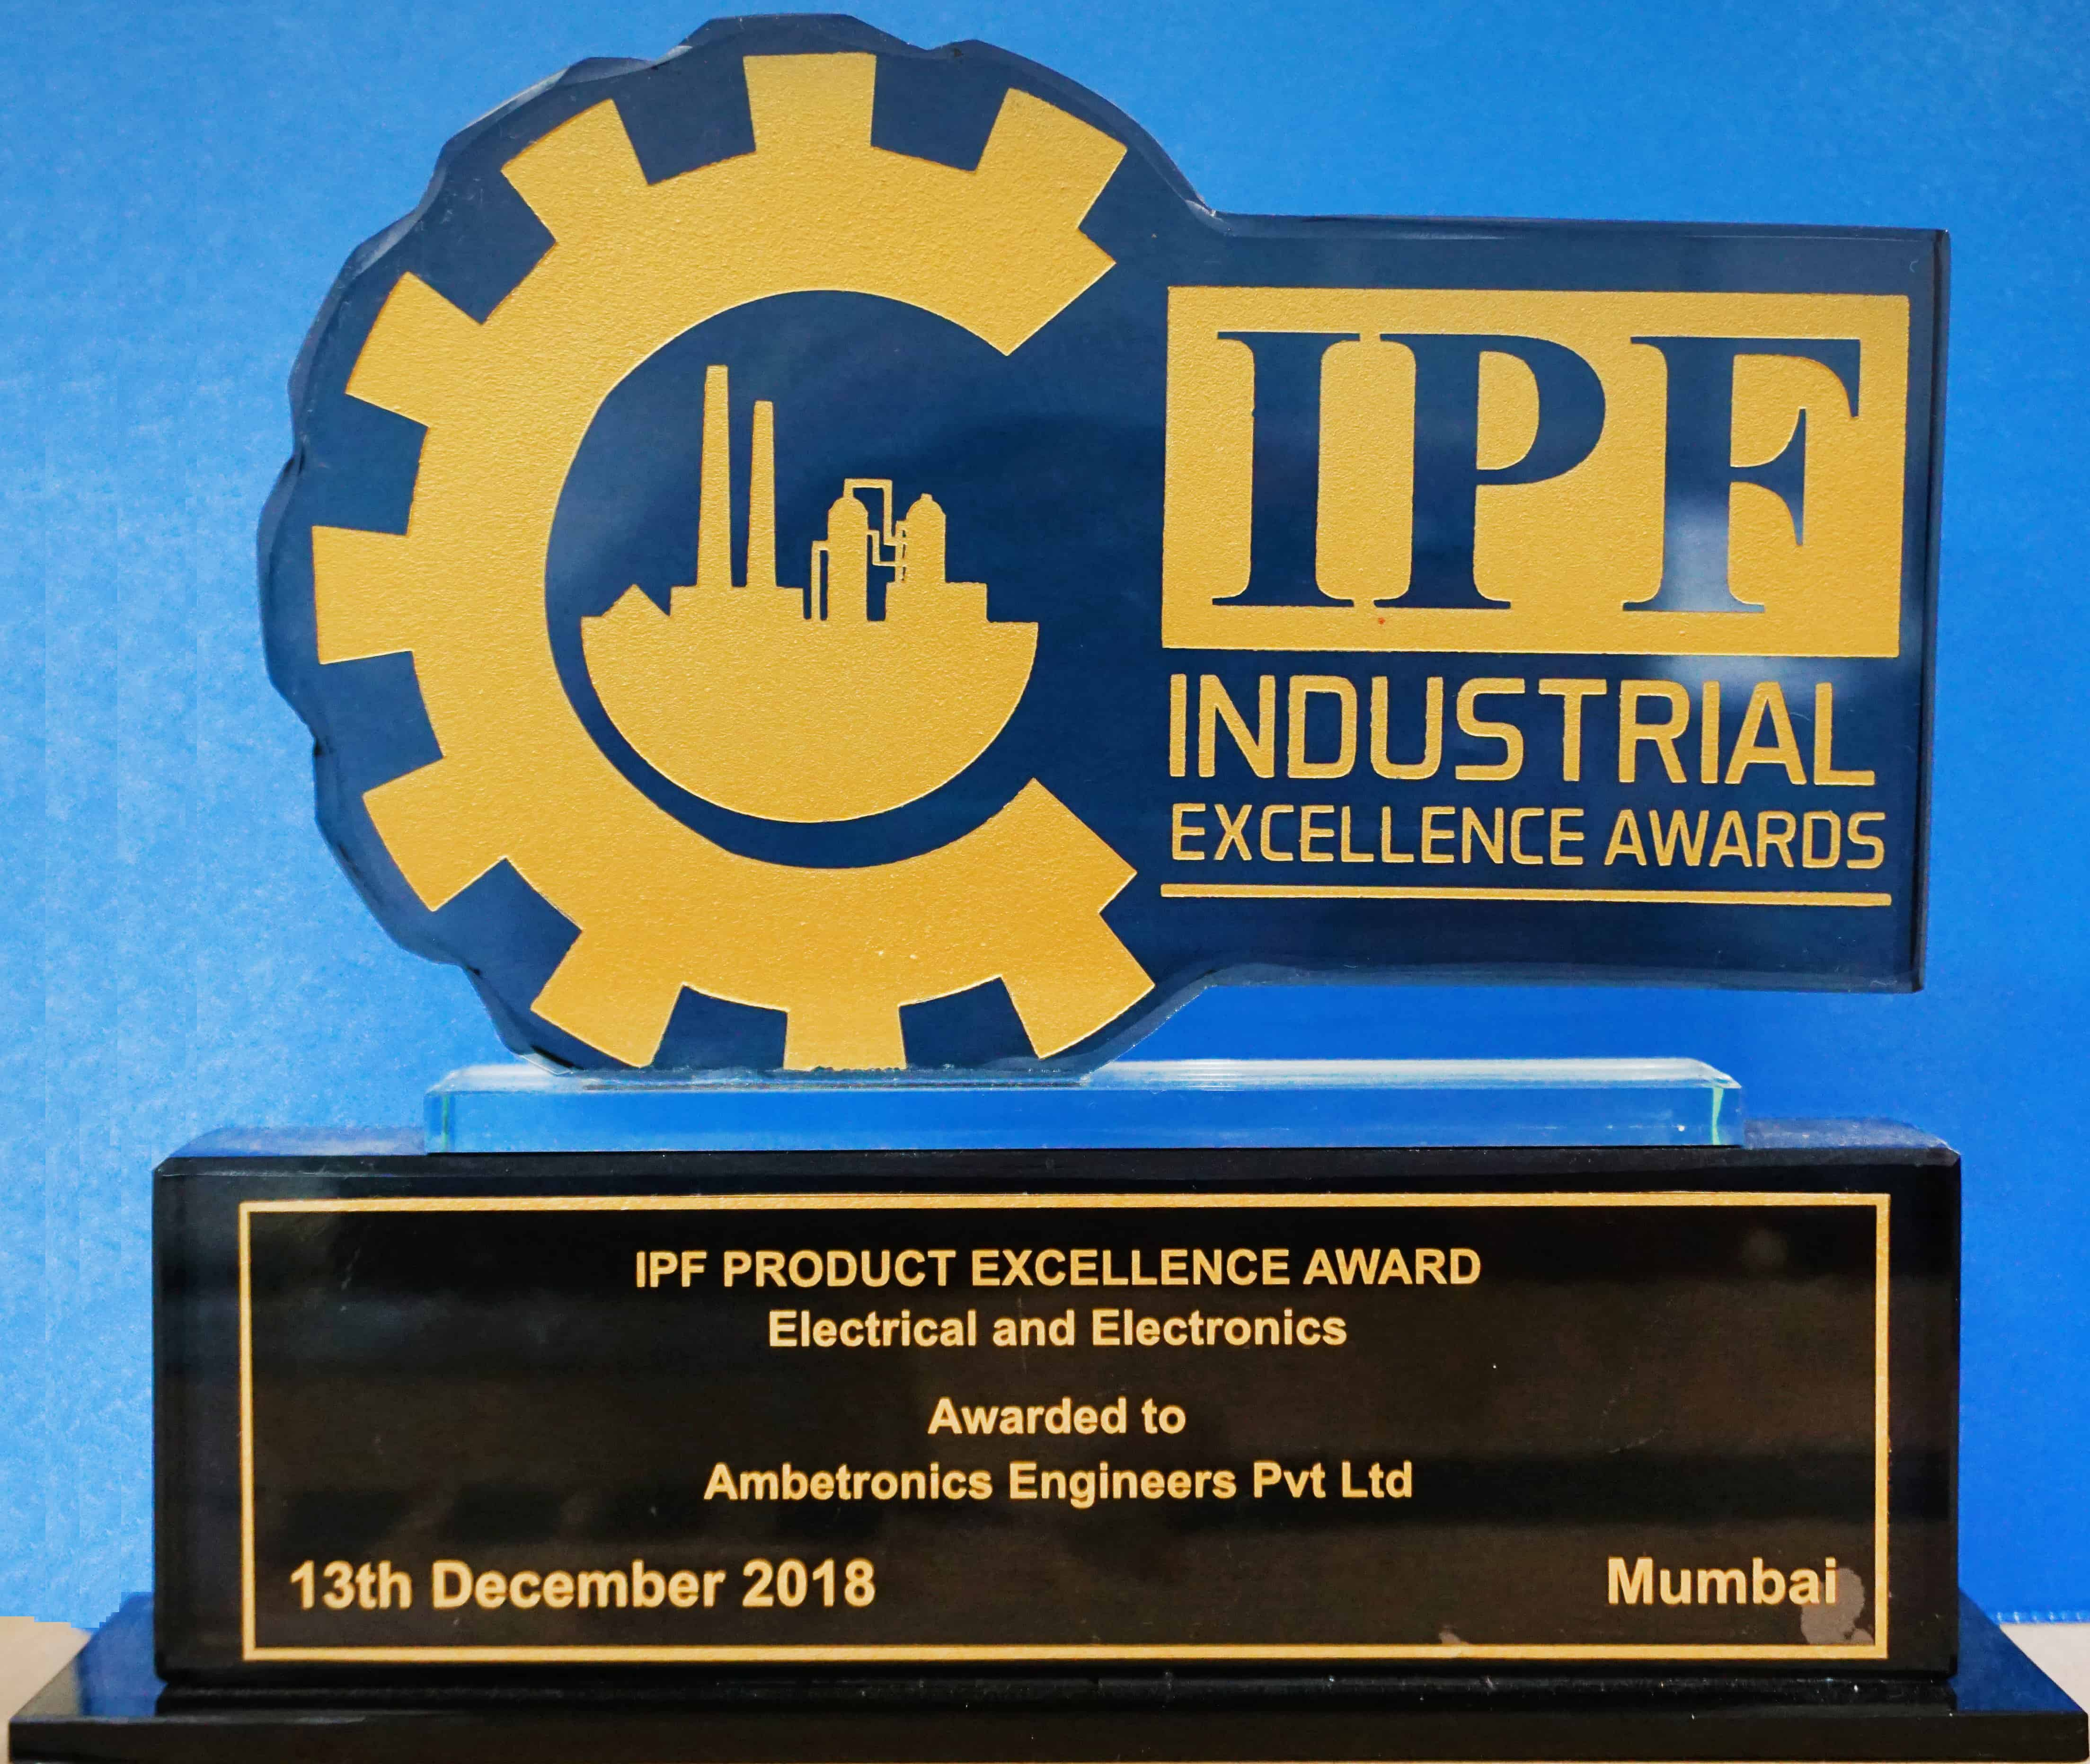 IPF Industrial Excellence Award 2018